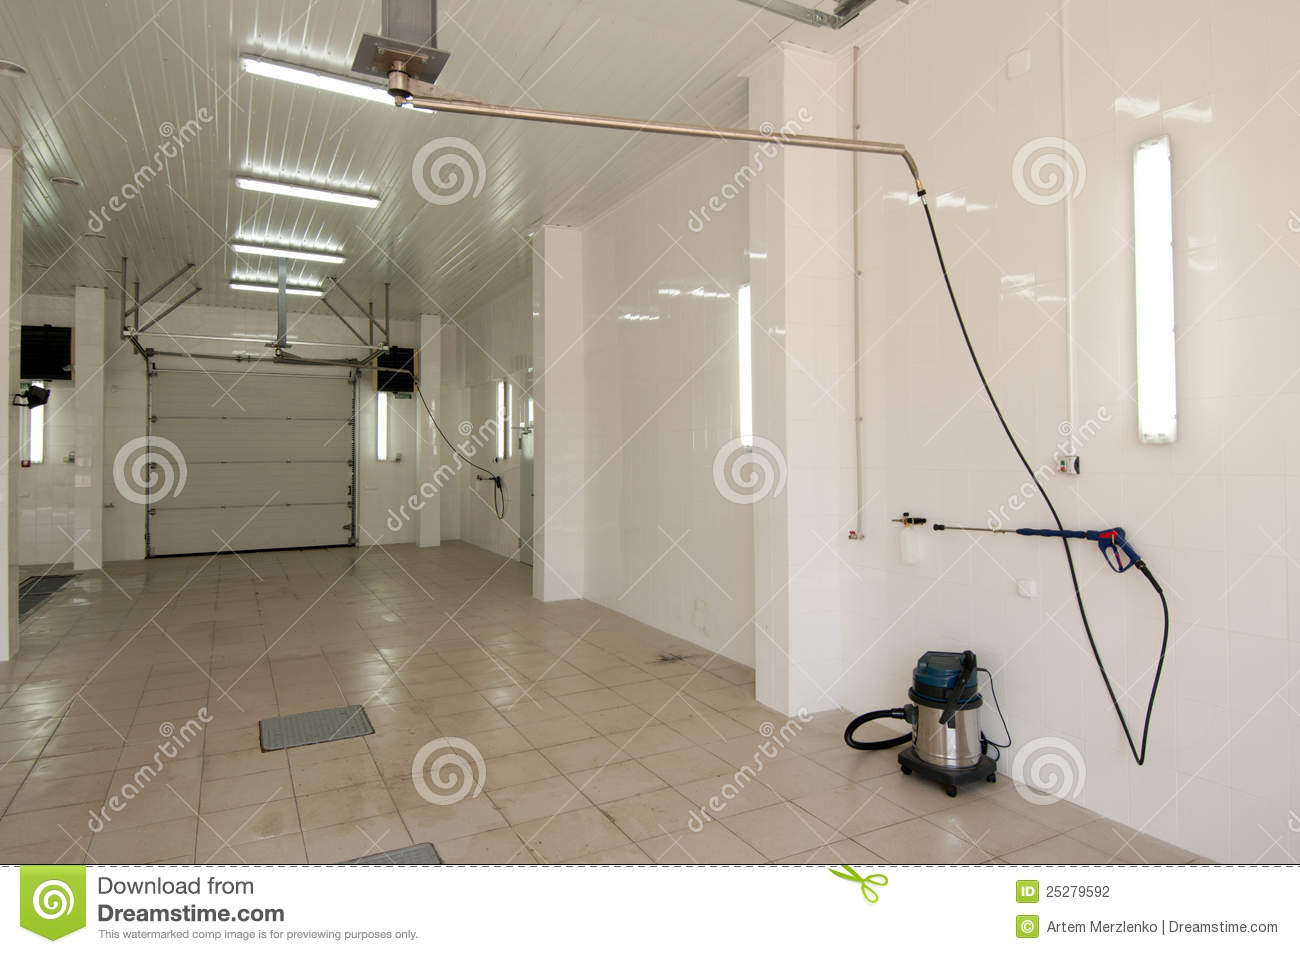 Interior space car wash stock photo. Image of compact - 25279592